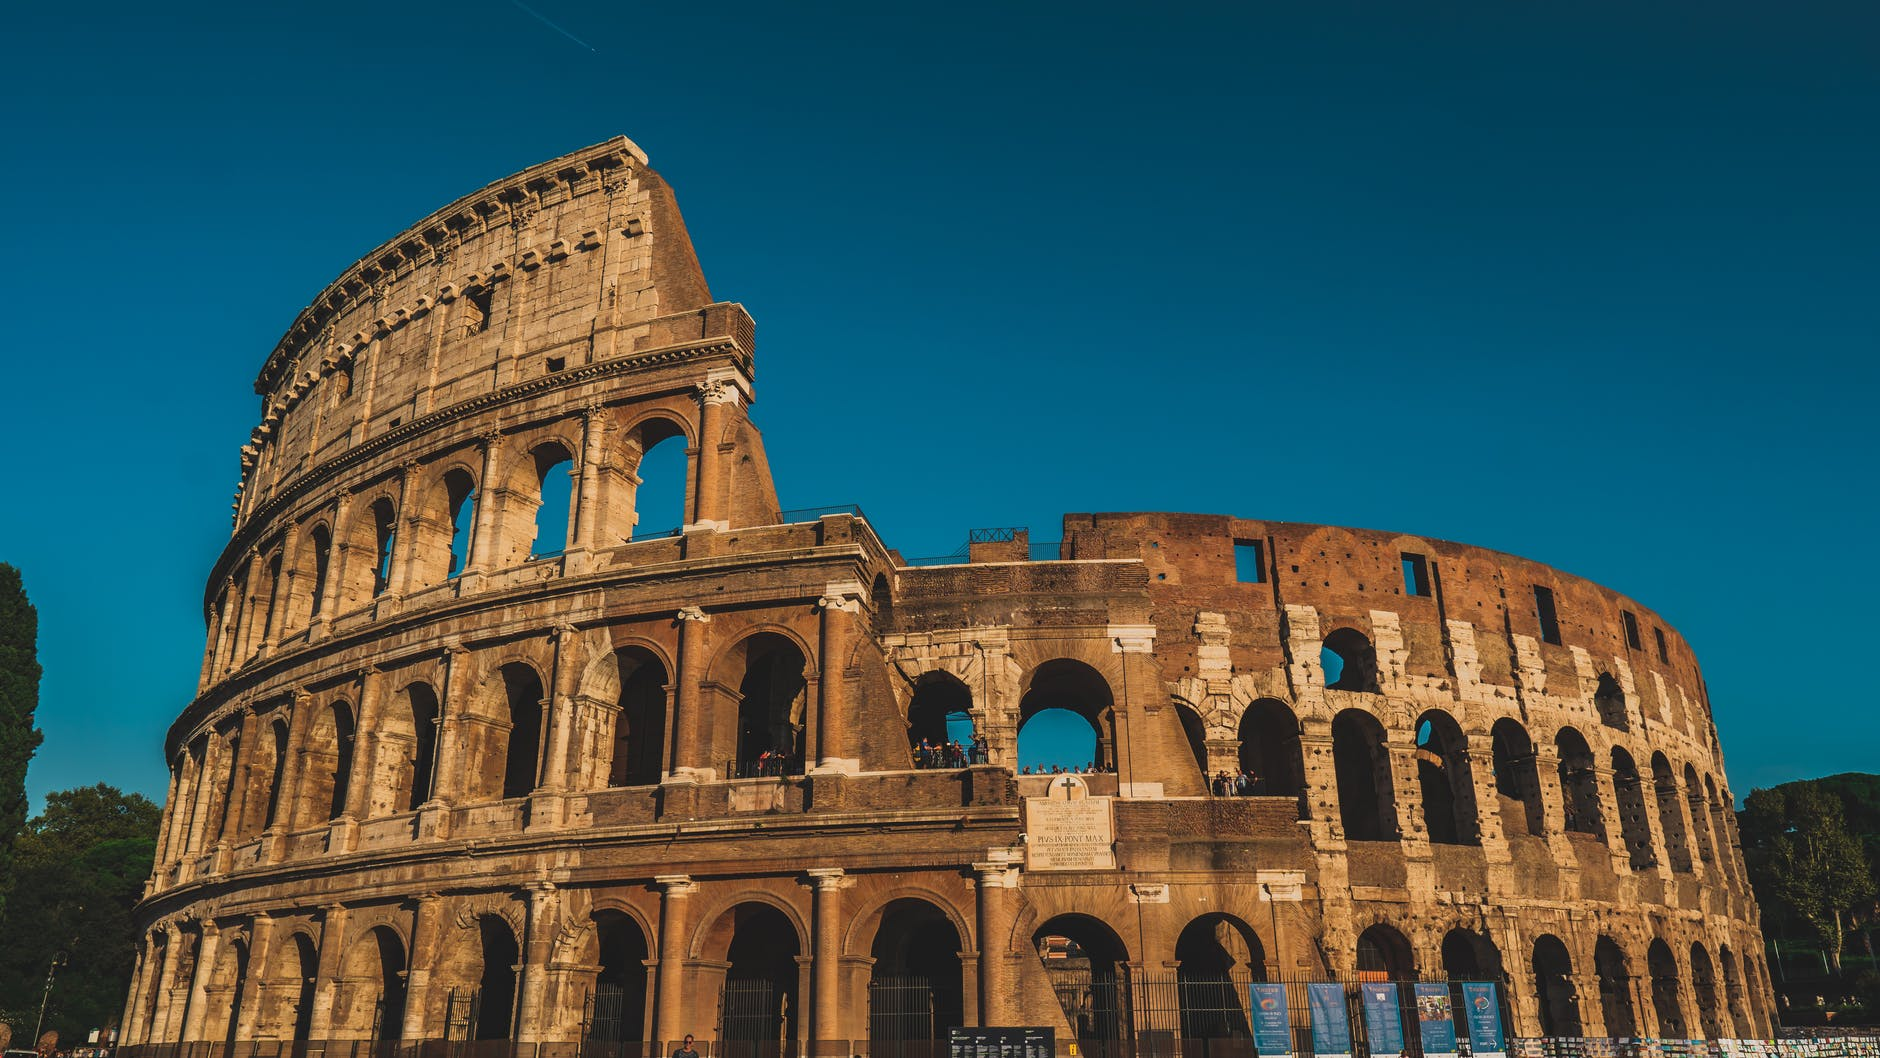 The Colosseum at dusk. Photo by Chait Goli on Pexels.com